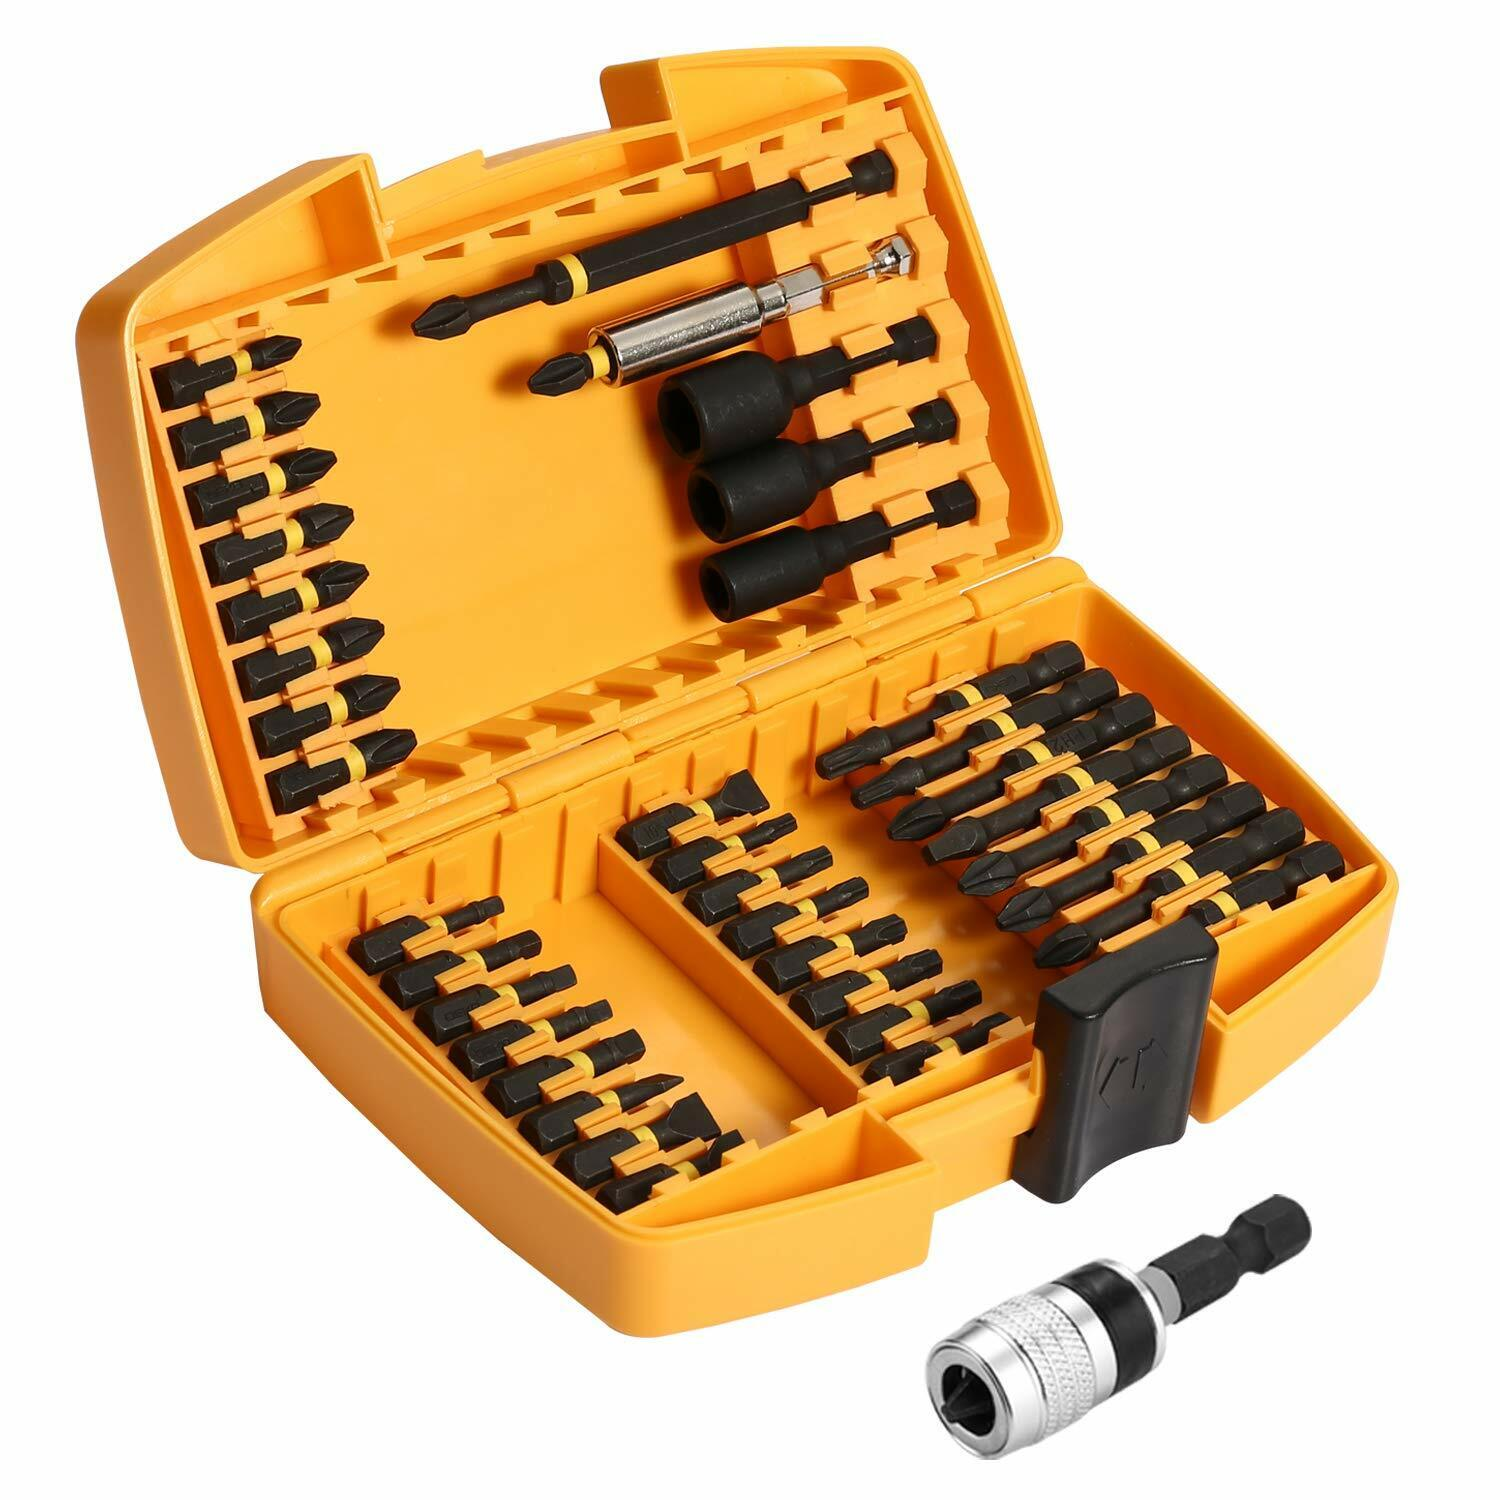 DEKO 40 Piece Screwdriver Bit Set Magnetic Impact Driver Bit